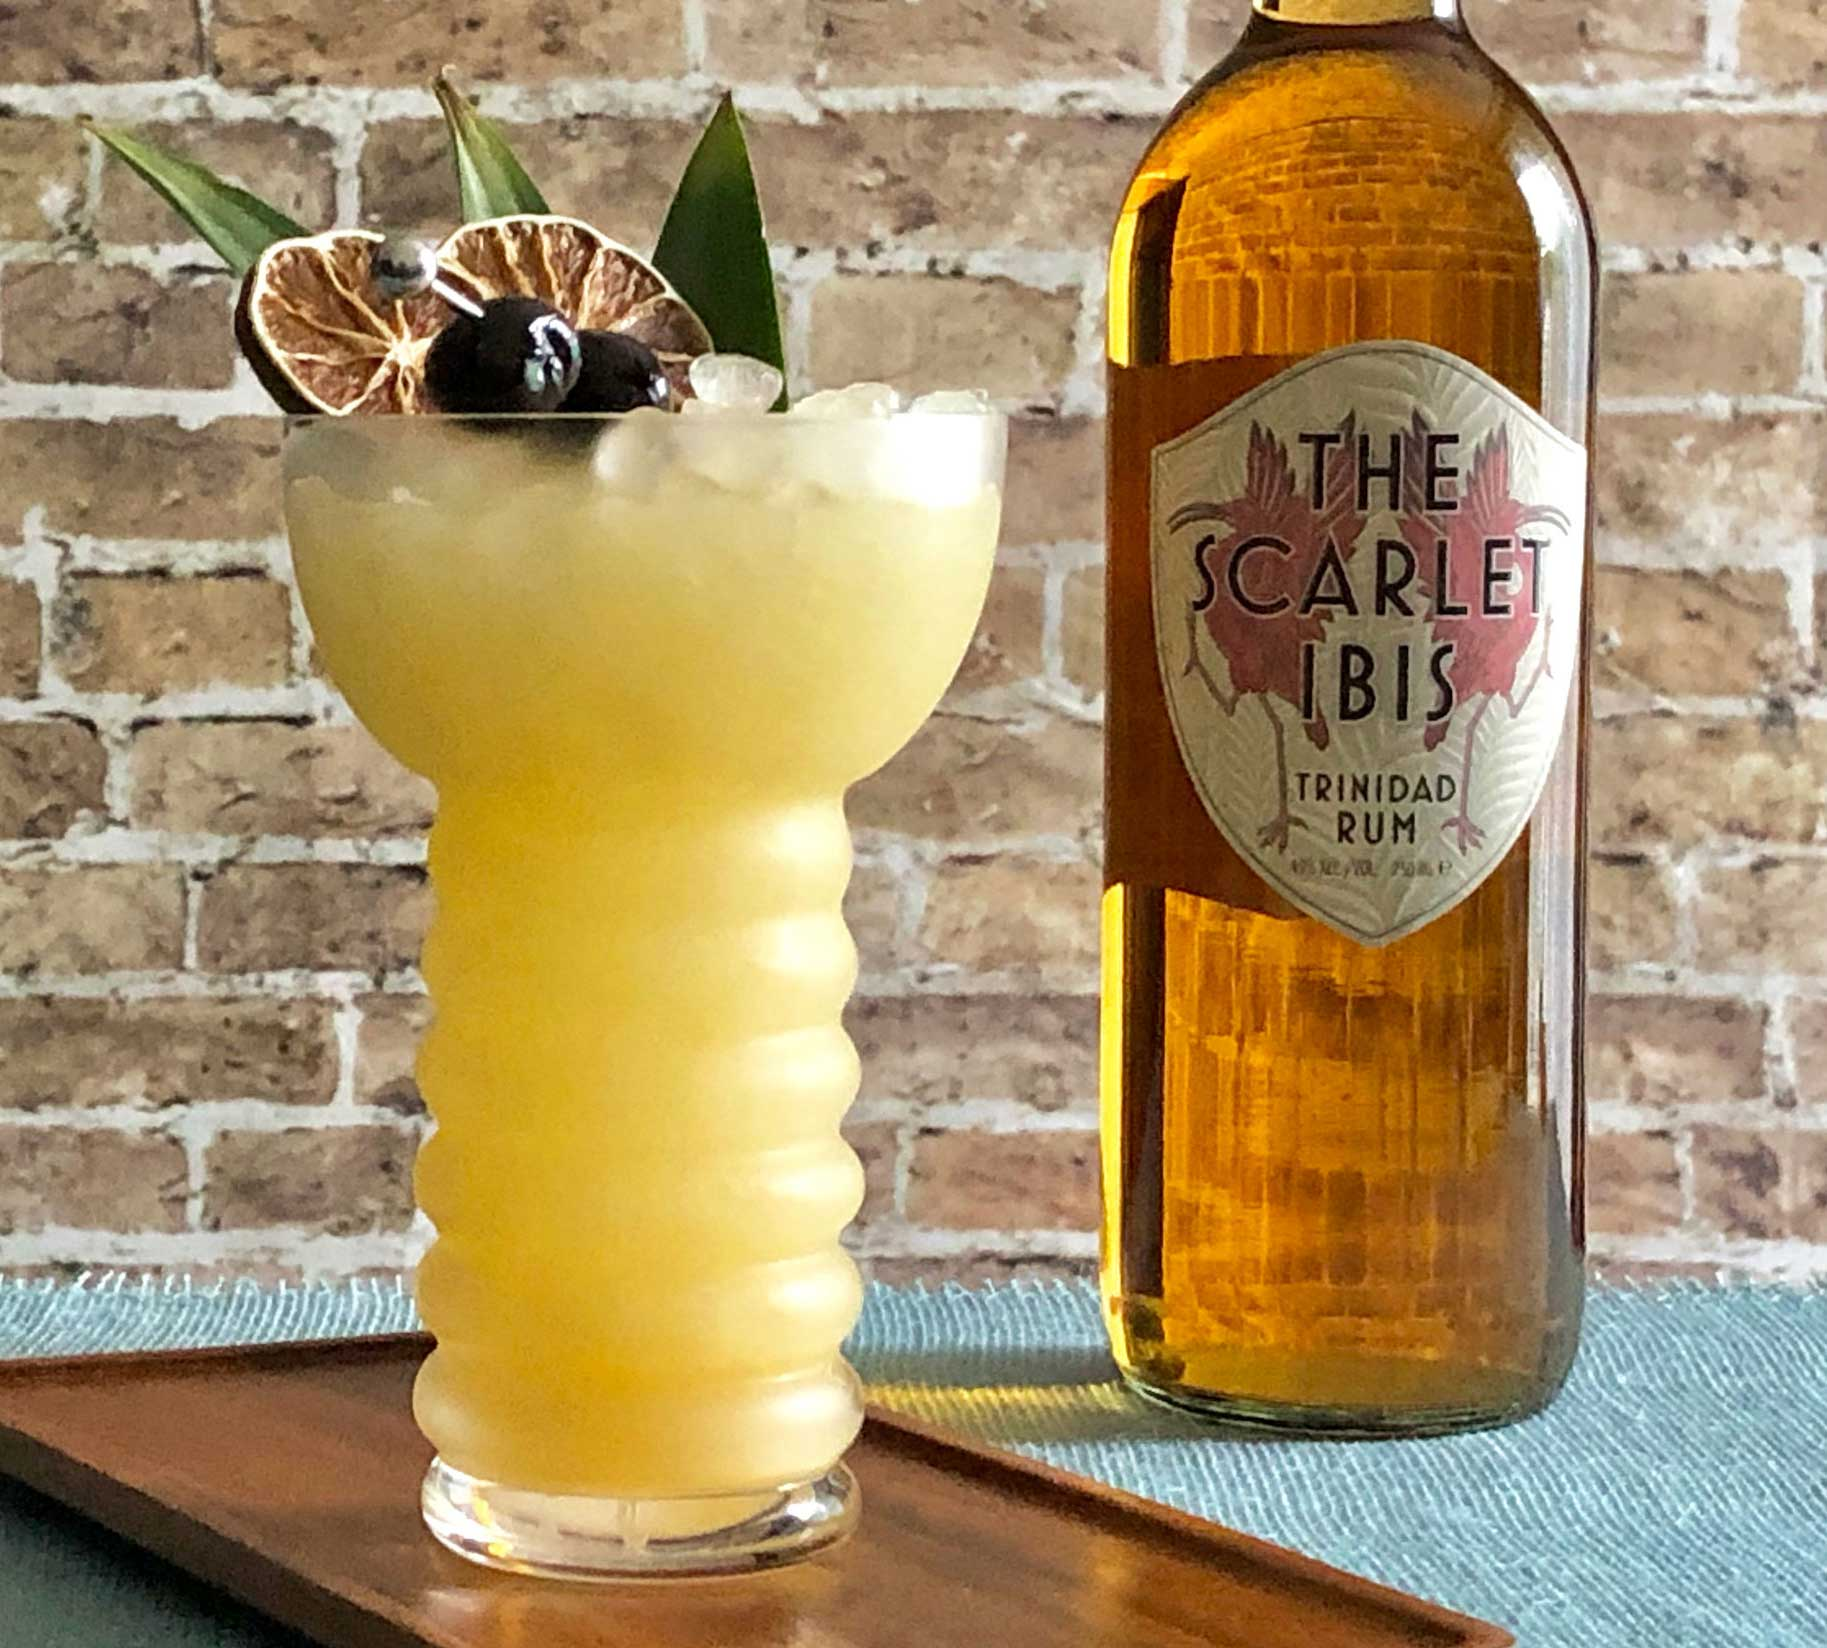 An example of the The Beachbum, the mixed drink (cocktail), by John Deragon, PDT, New York City, featuring The Scarlet Ibis Trinidad Rum, light rum, pineapple juice, lime juice, Rothman & Winter Orchard Apricot Liqueur, and orgeat